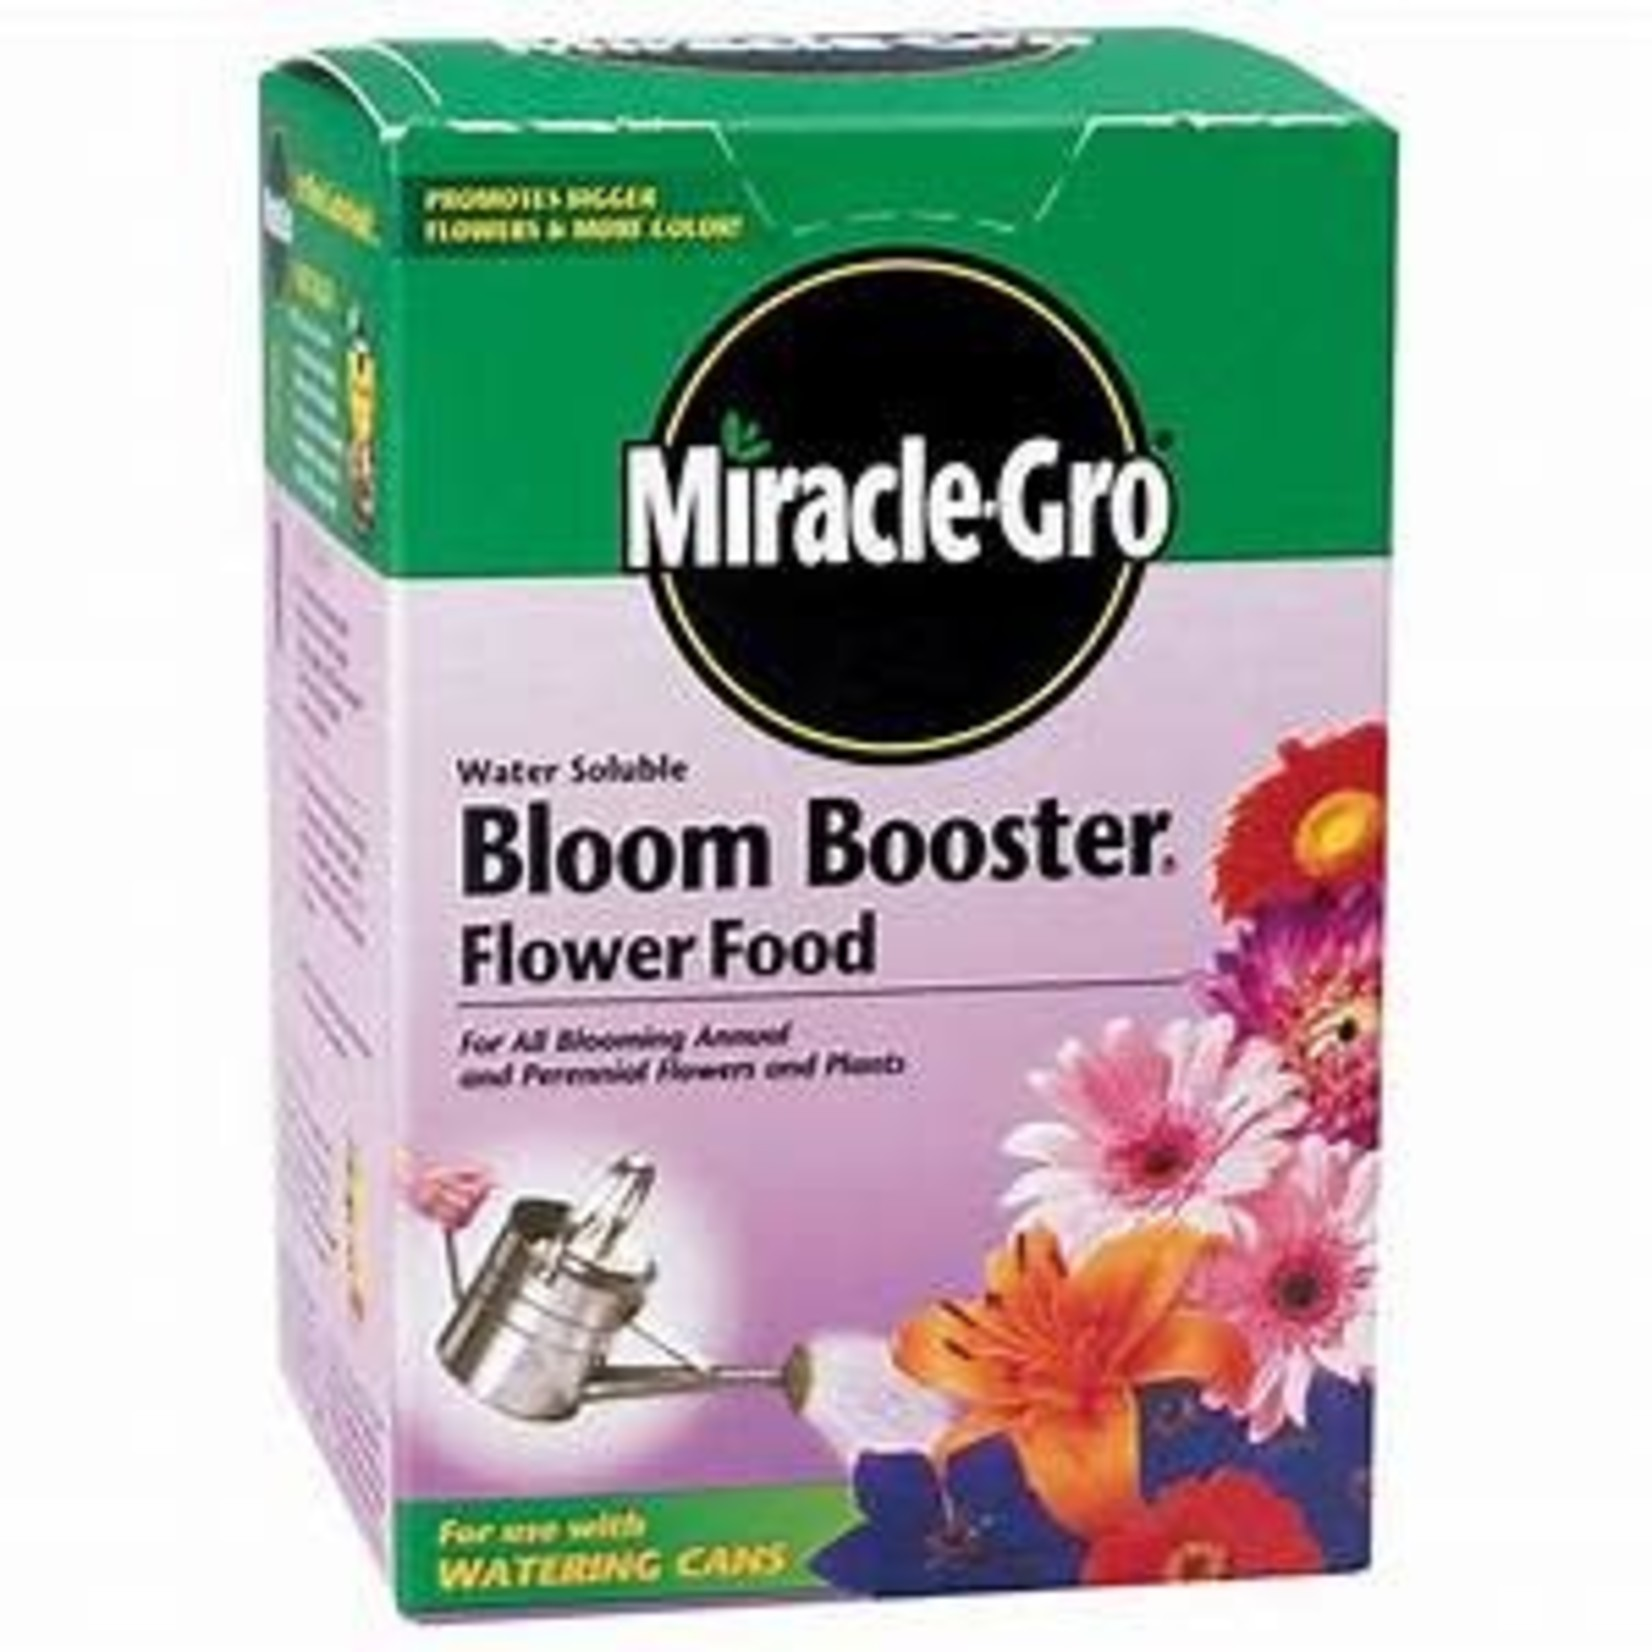 Miracle-Gro Bloom Booster 15-30-15 (500 gm)